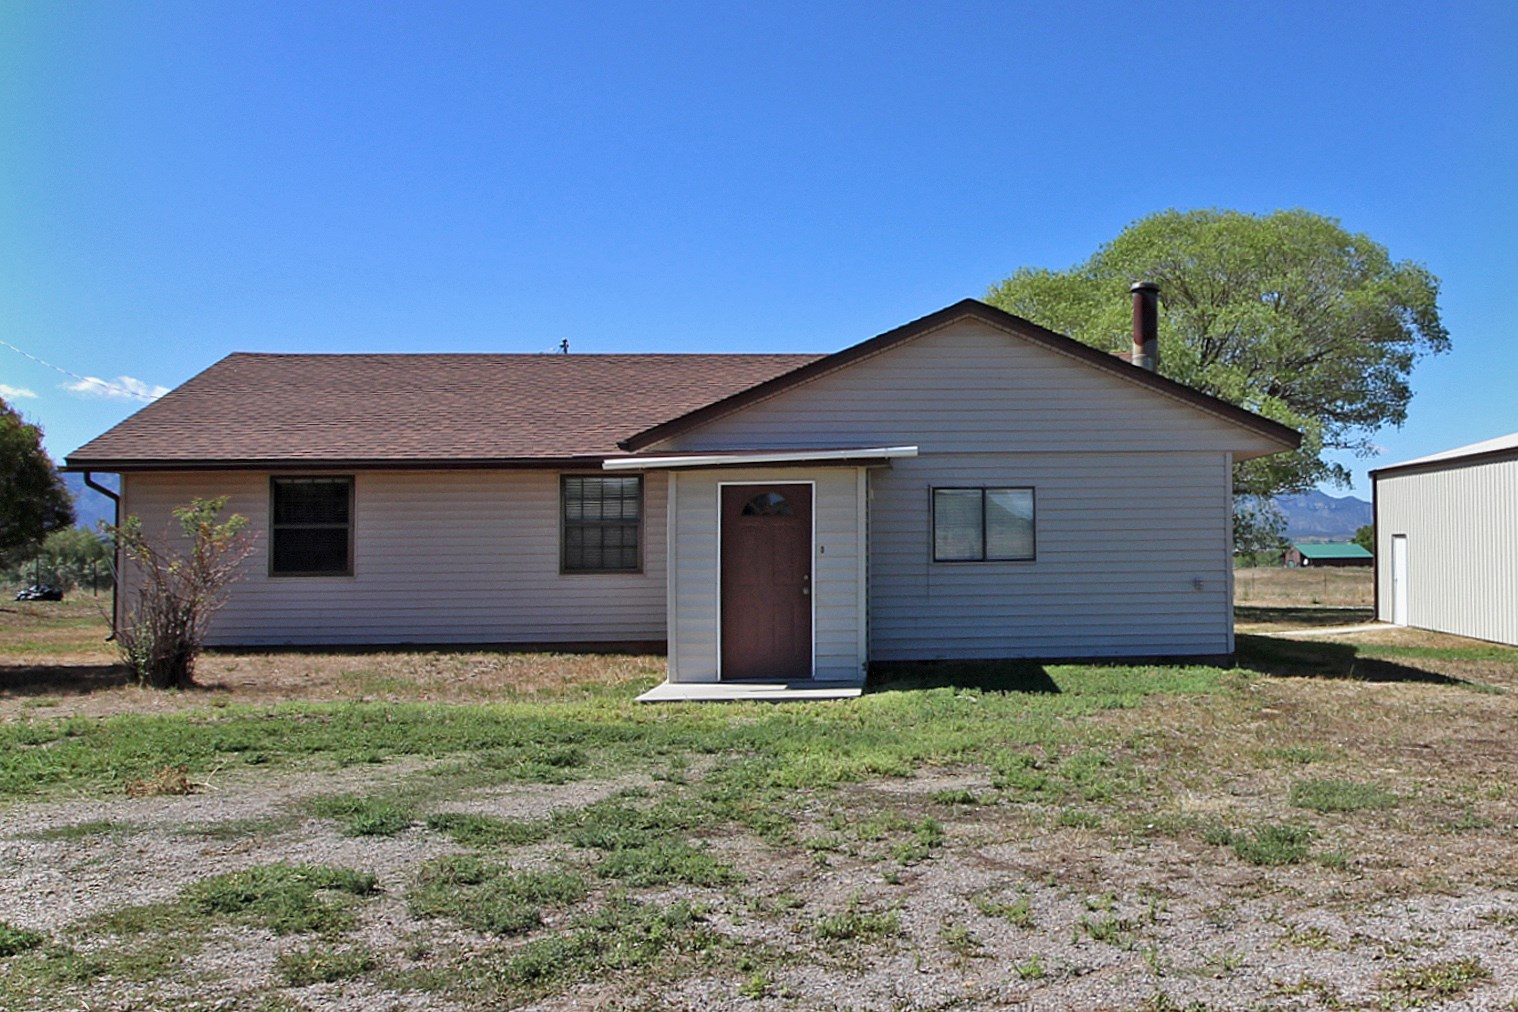 3 BR/2 BA home on 32 acres with irrigation in Dolores,  CO